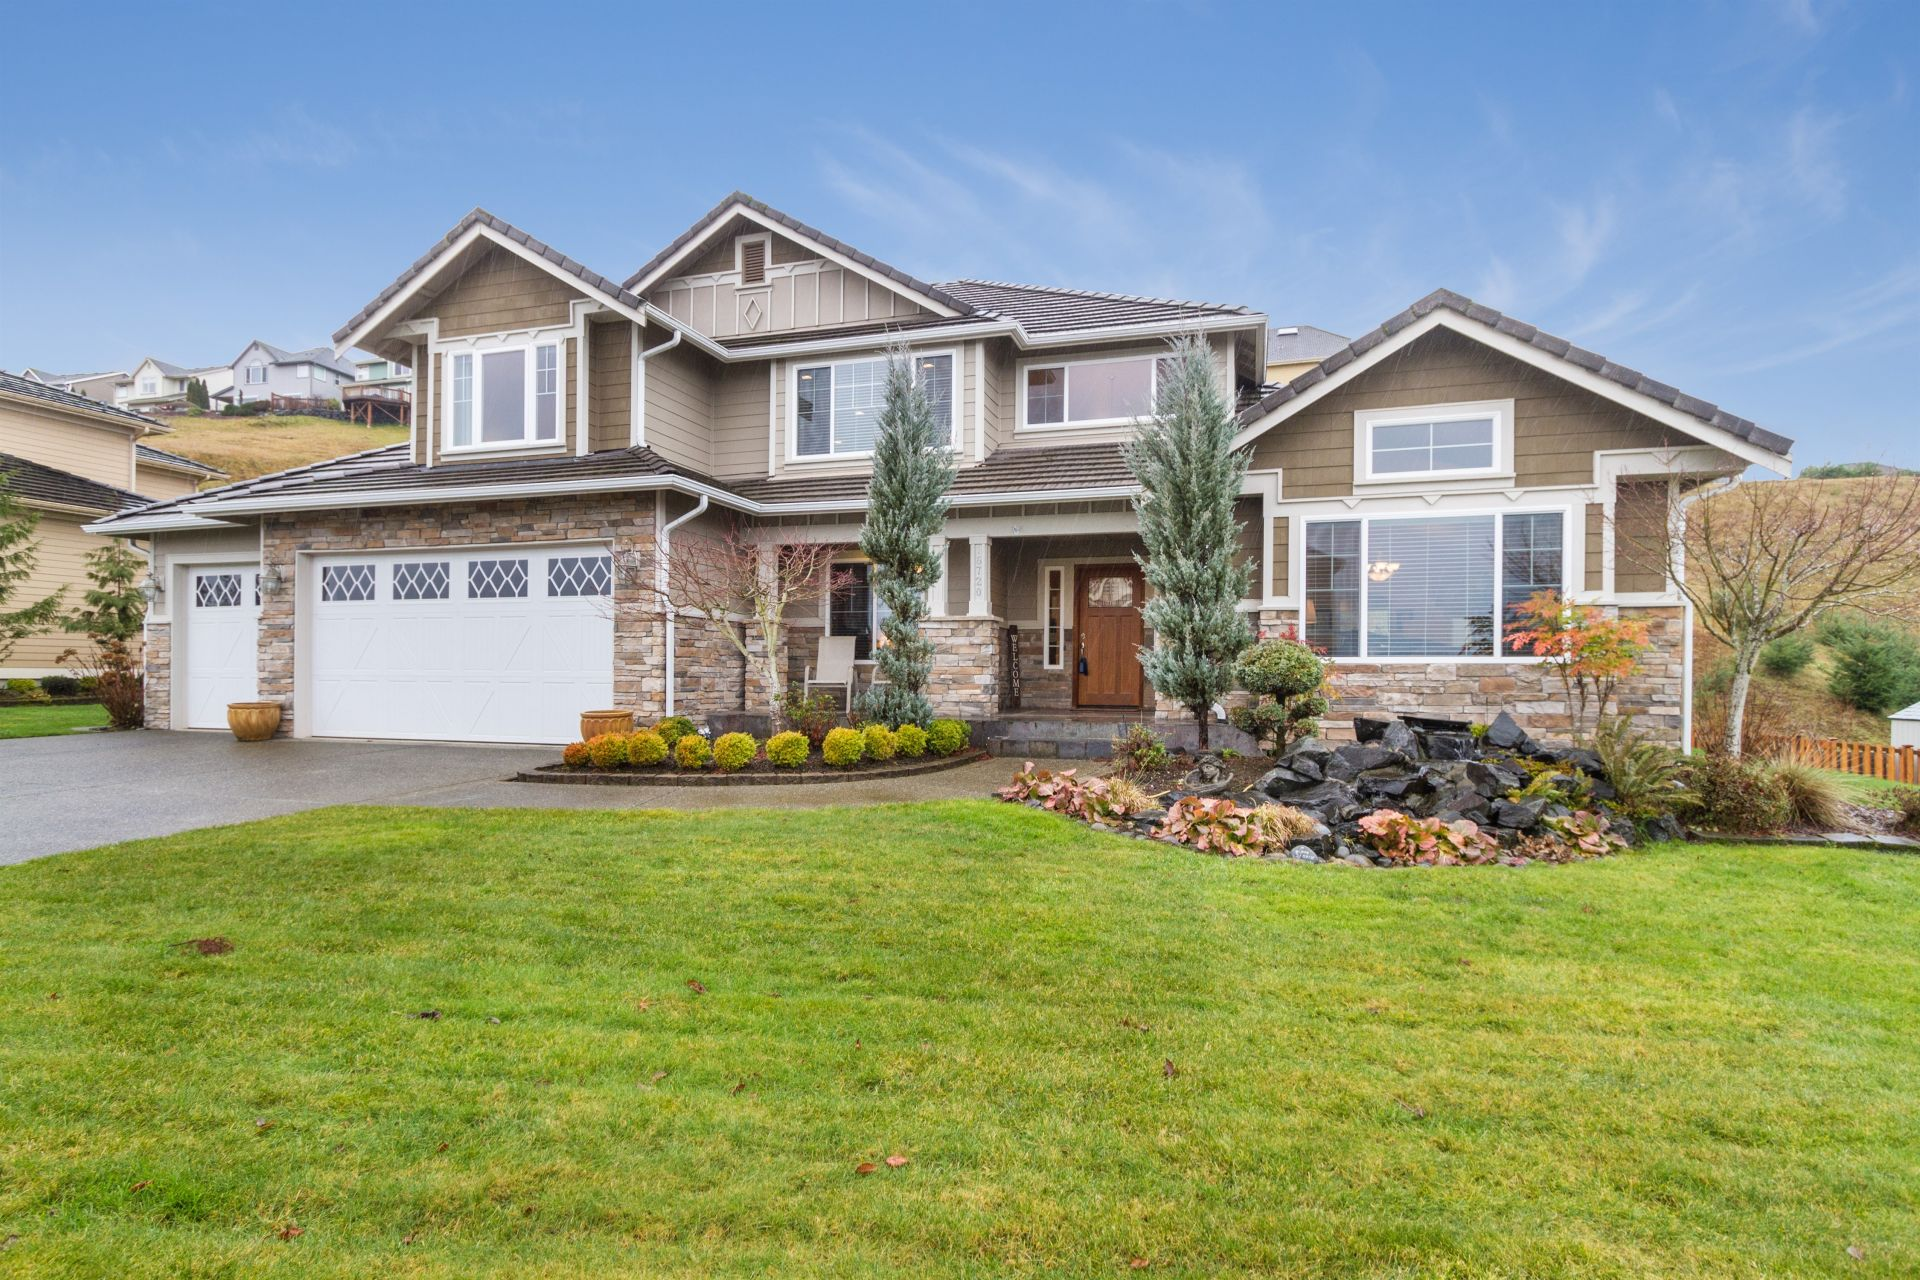 How to Find the Home That's Right for You